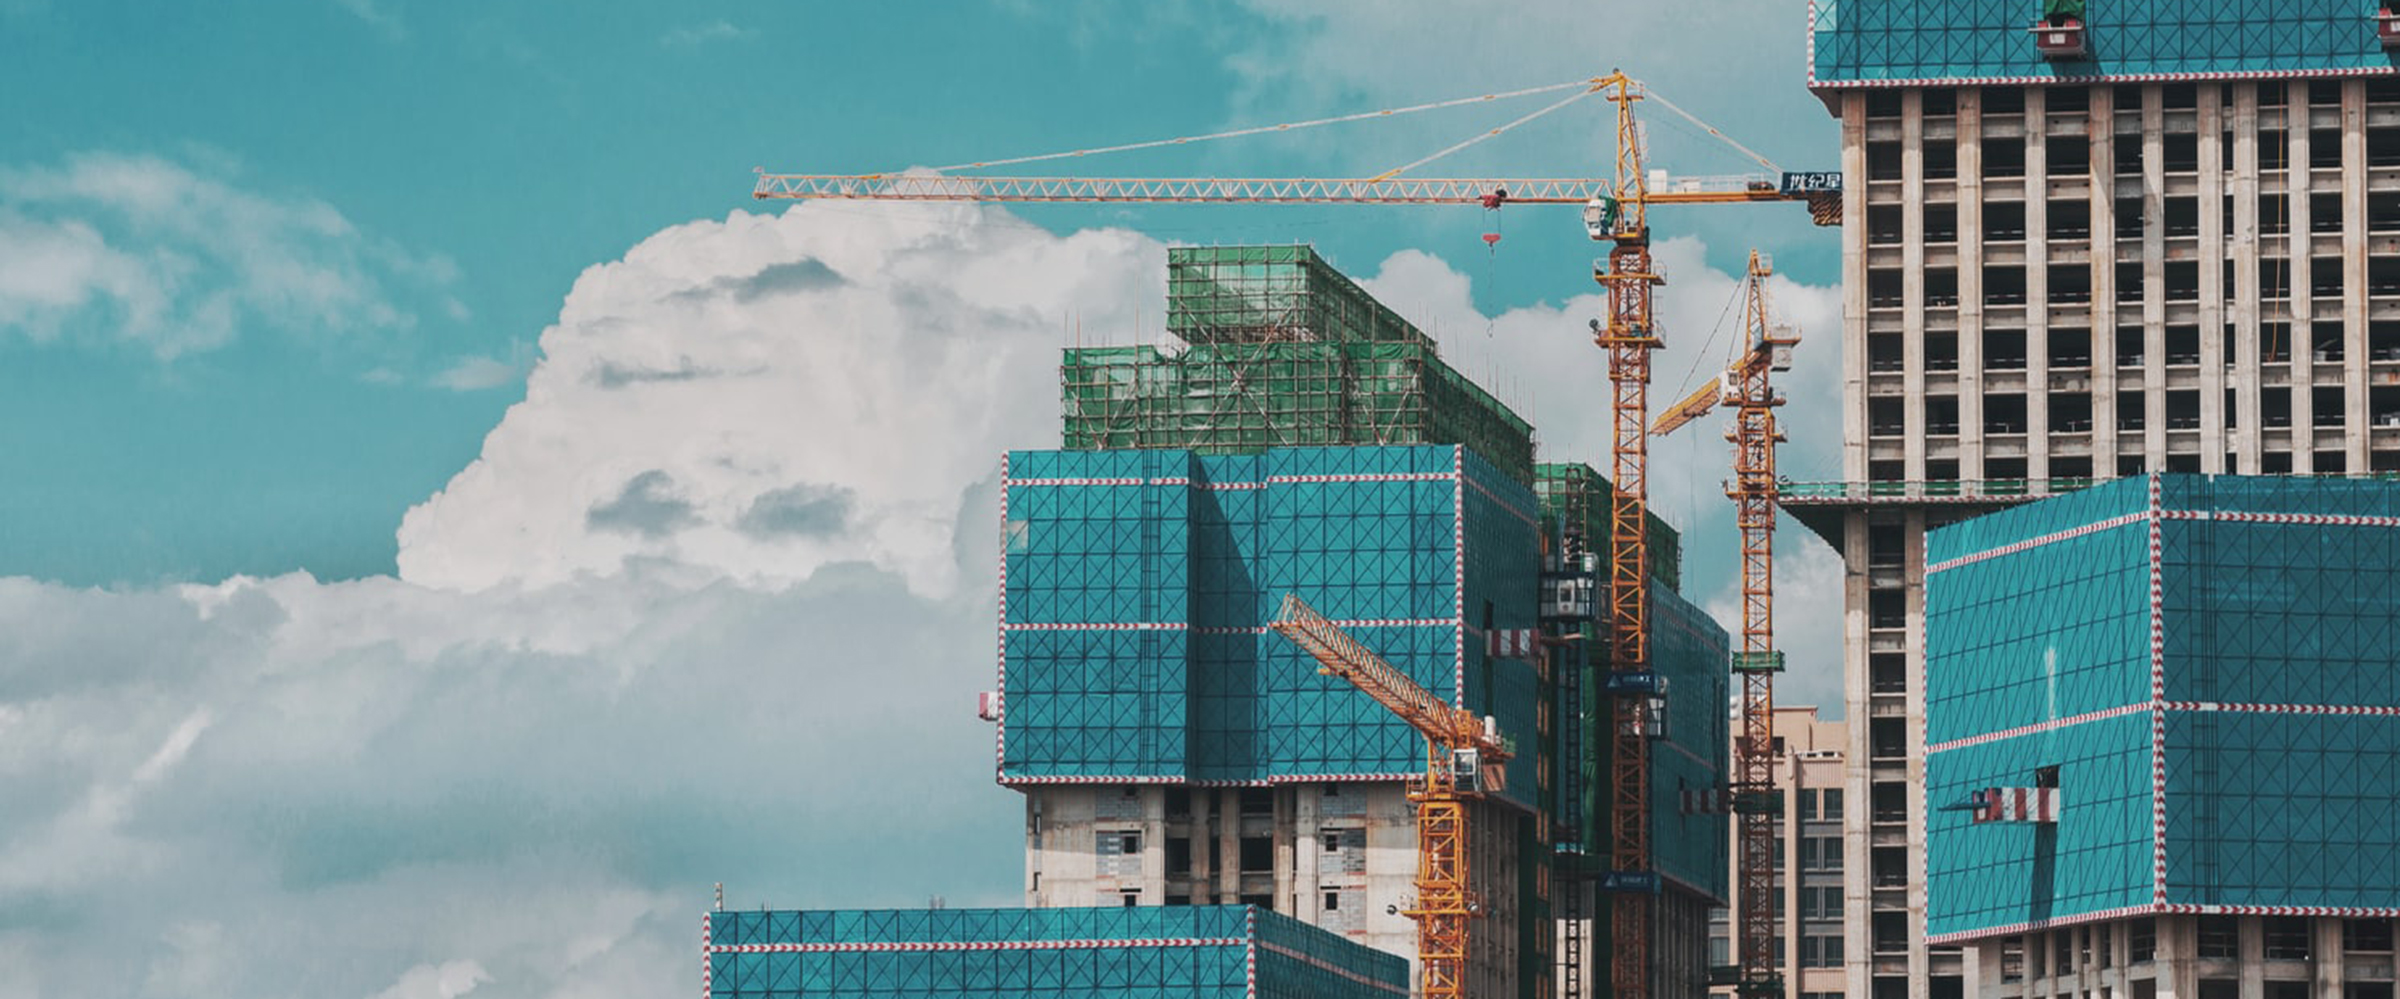 Cornwalls-the-latest-changes-in-law-applying-to-the-building-and-construction-industry-in-queensland